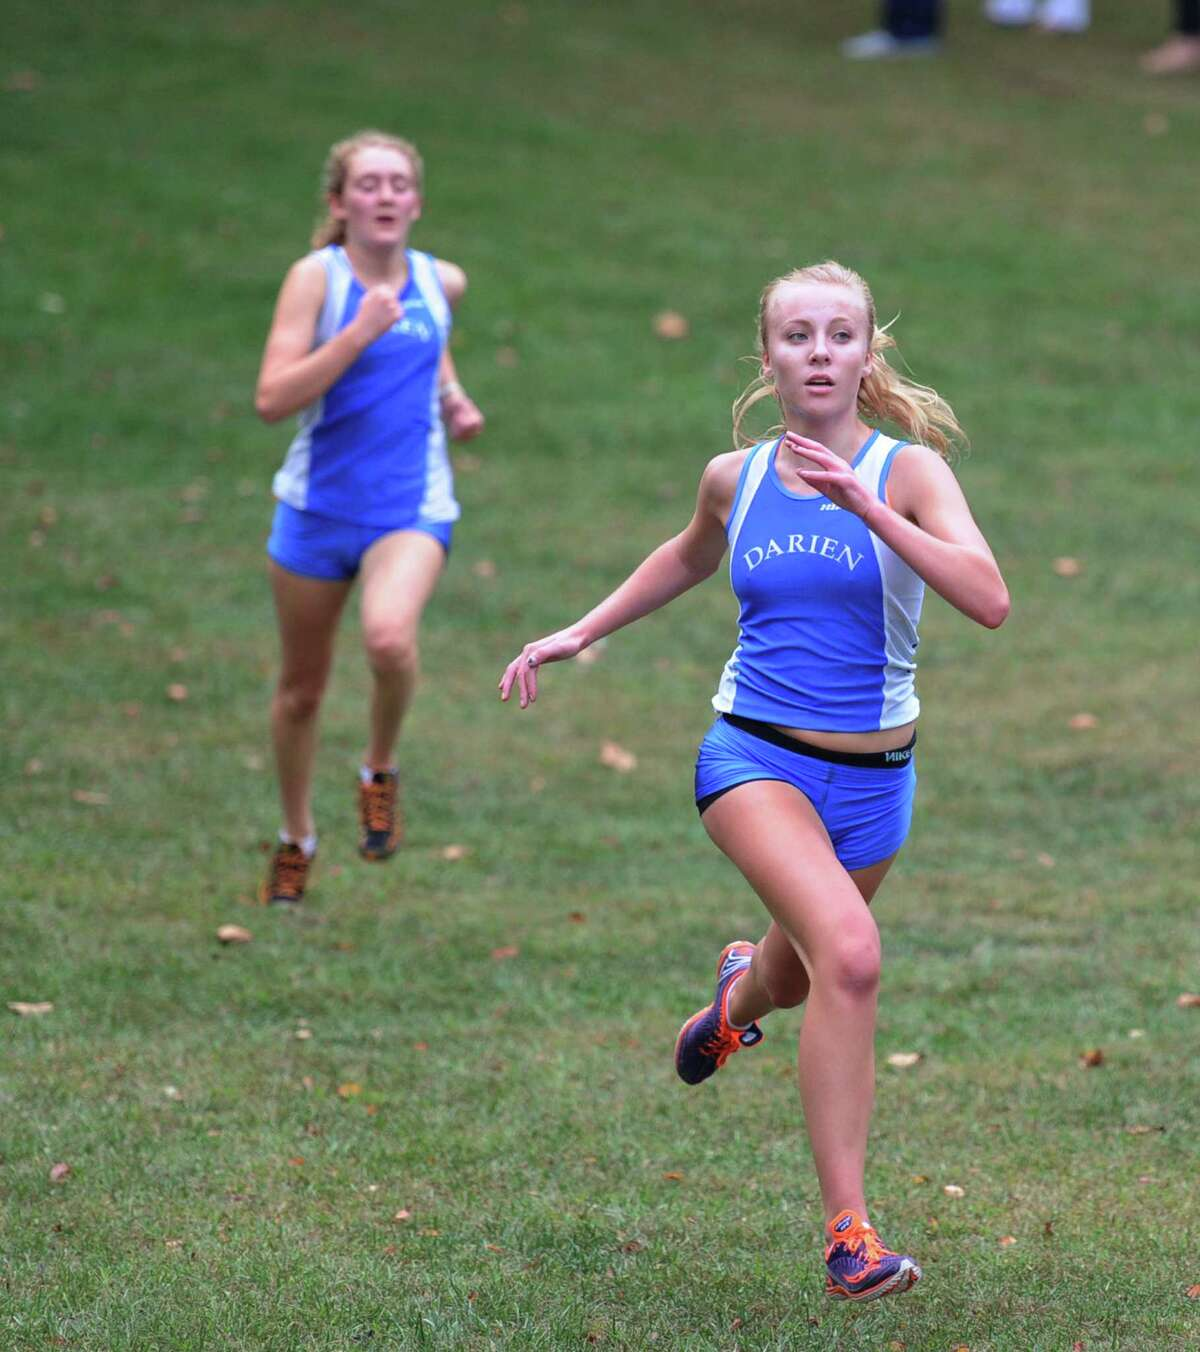 Darien High School's Amanda Percarpio, right, just before crossing the finish line with a time of 16:45 to win the girls high school cross country meet at Greenwich Point, Conn., Tuesday, Sept. 30, 2014. At left is Percarpio's Darien teammate Kate Halabi who finished second with a time of 16:47.